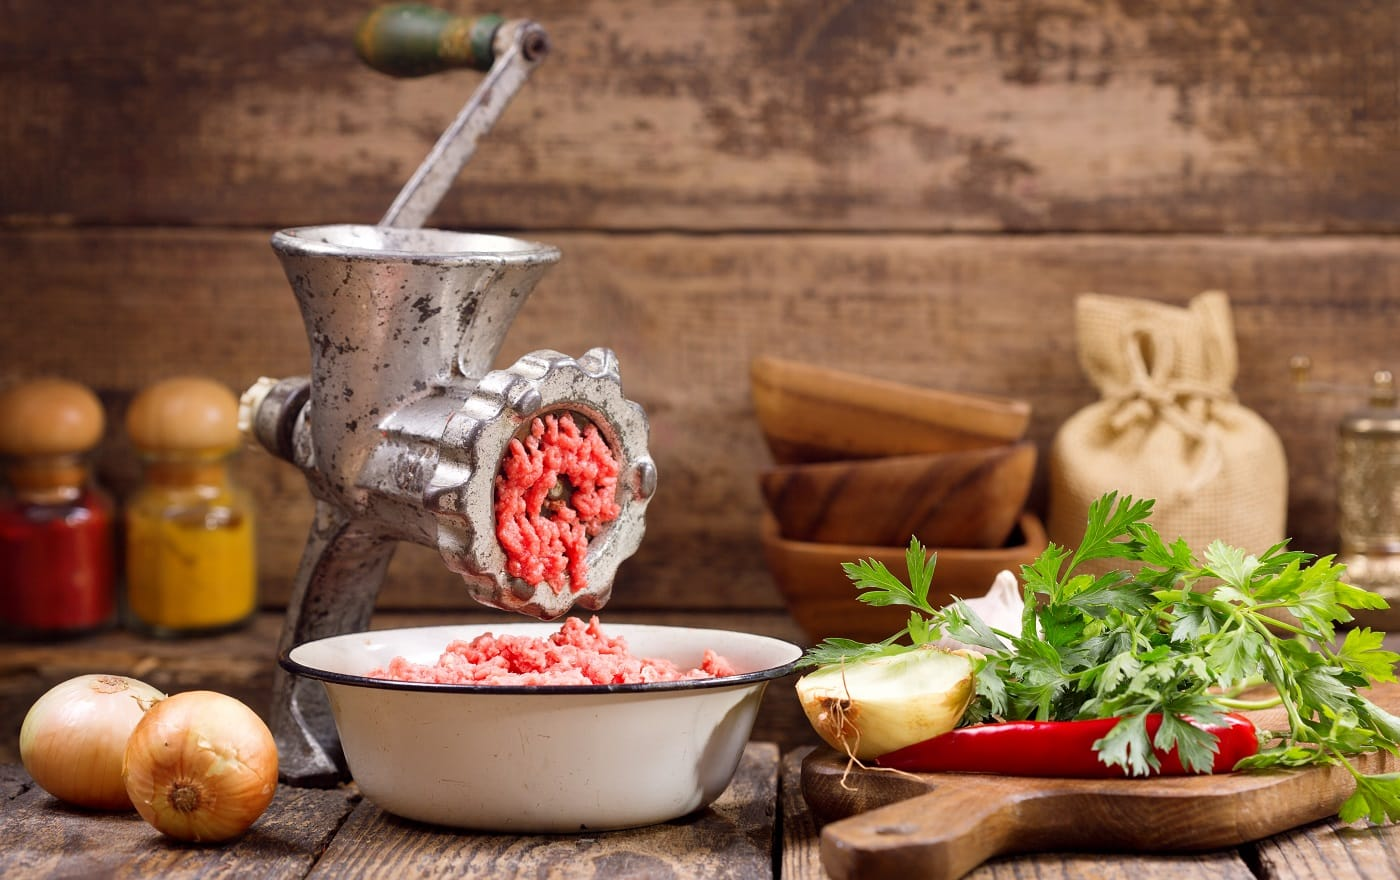 old grinder with minced meat and vegetables on wooden table